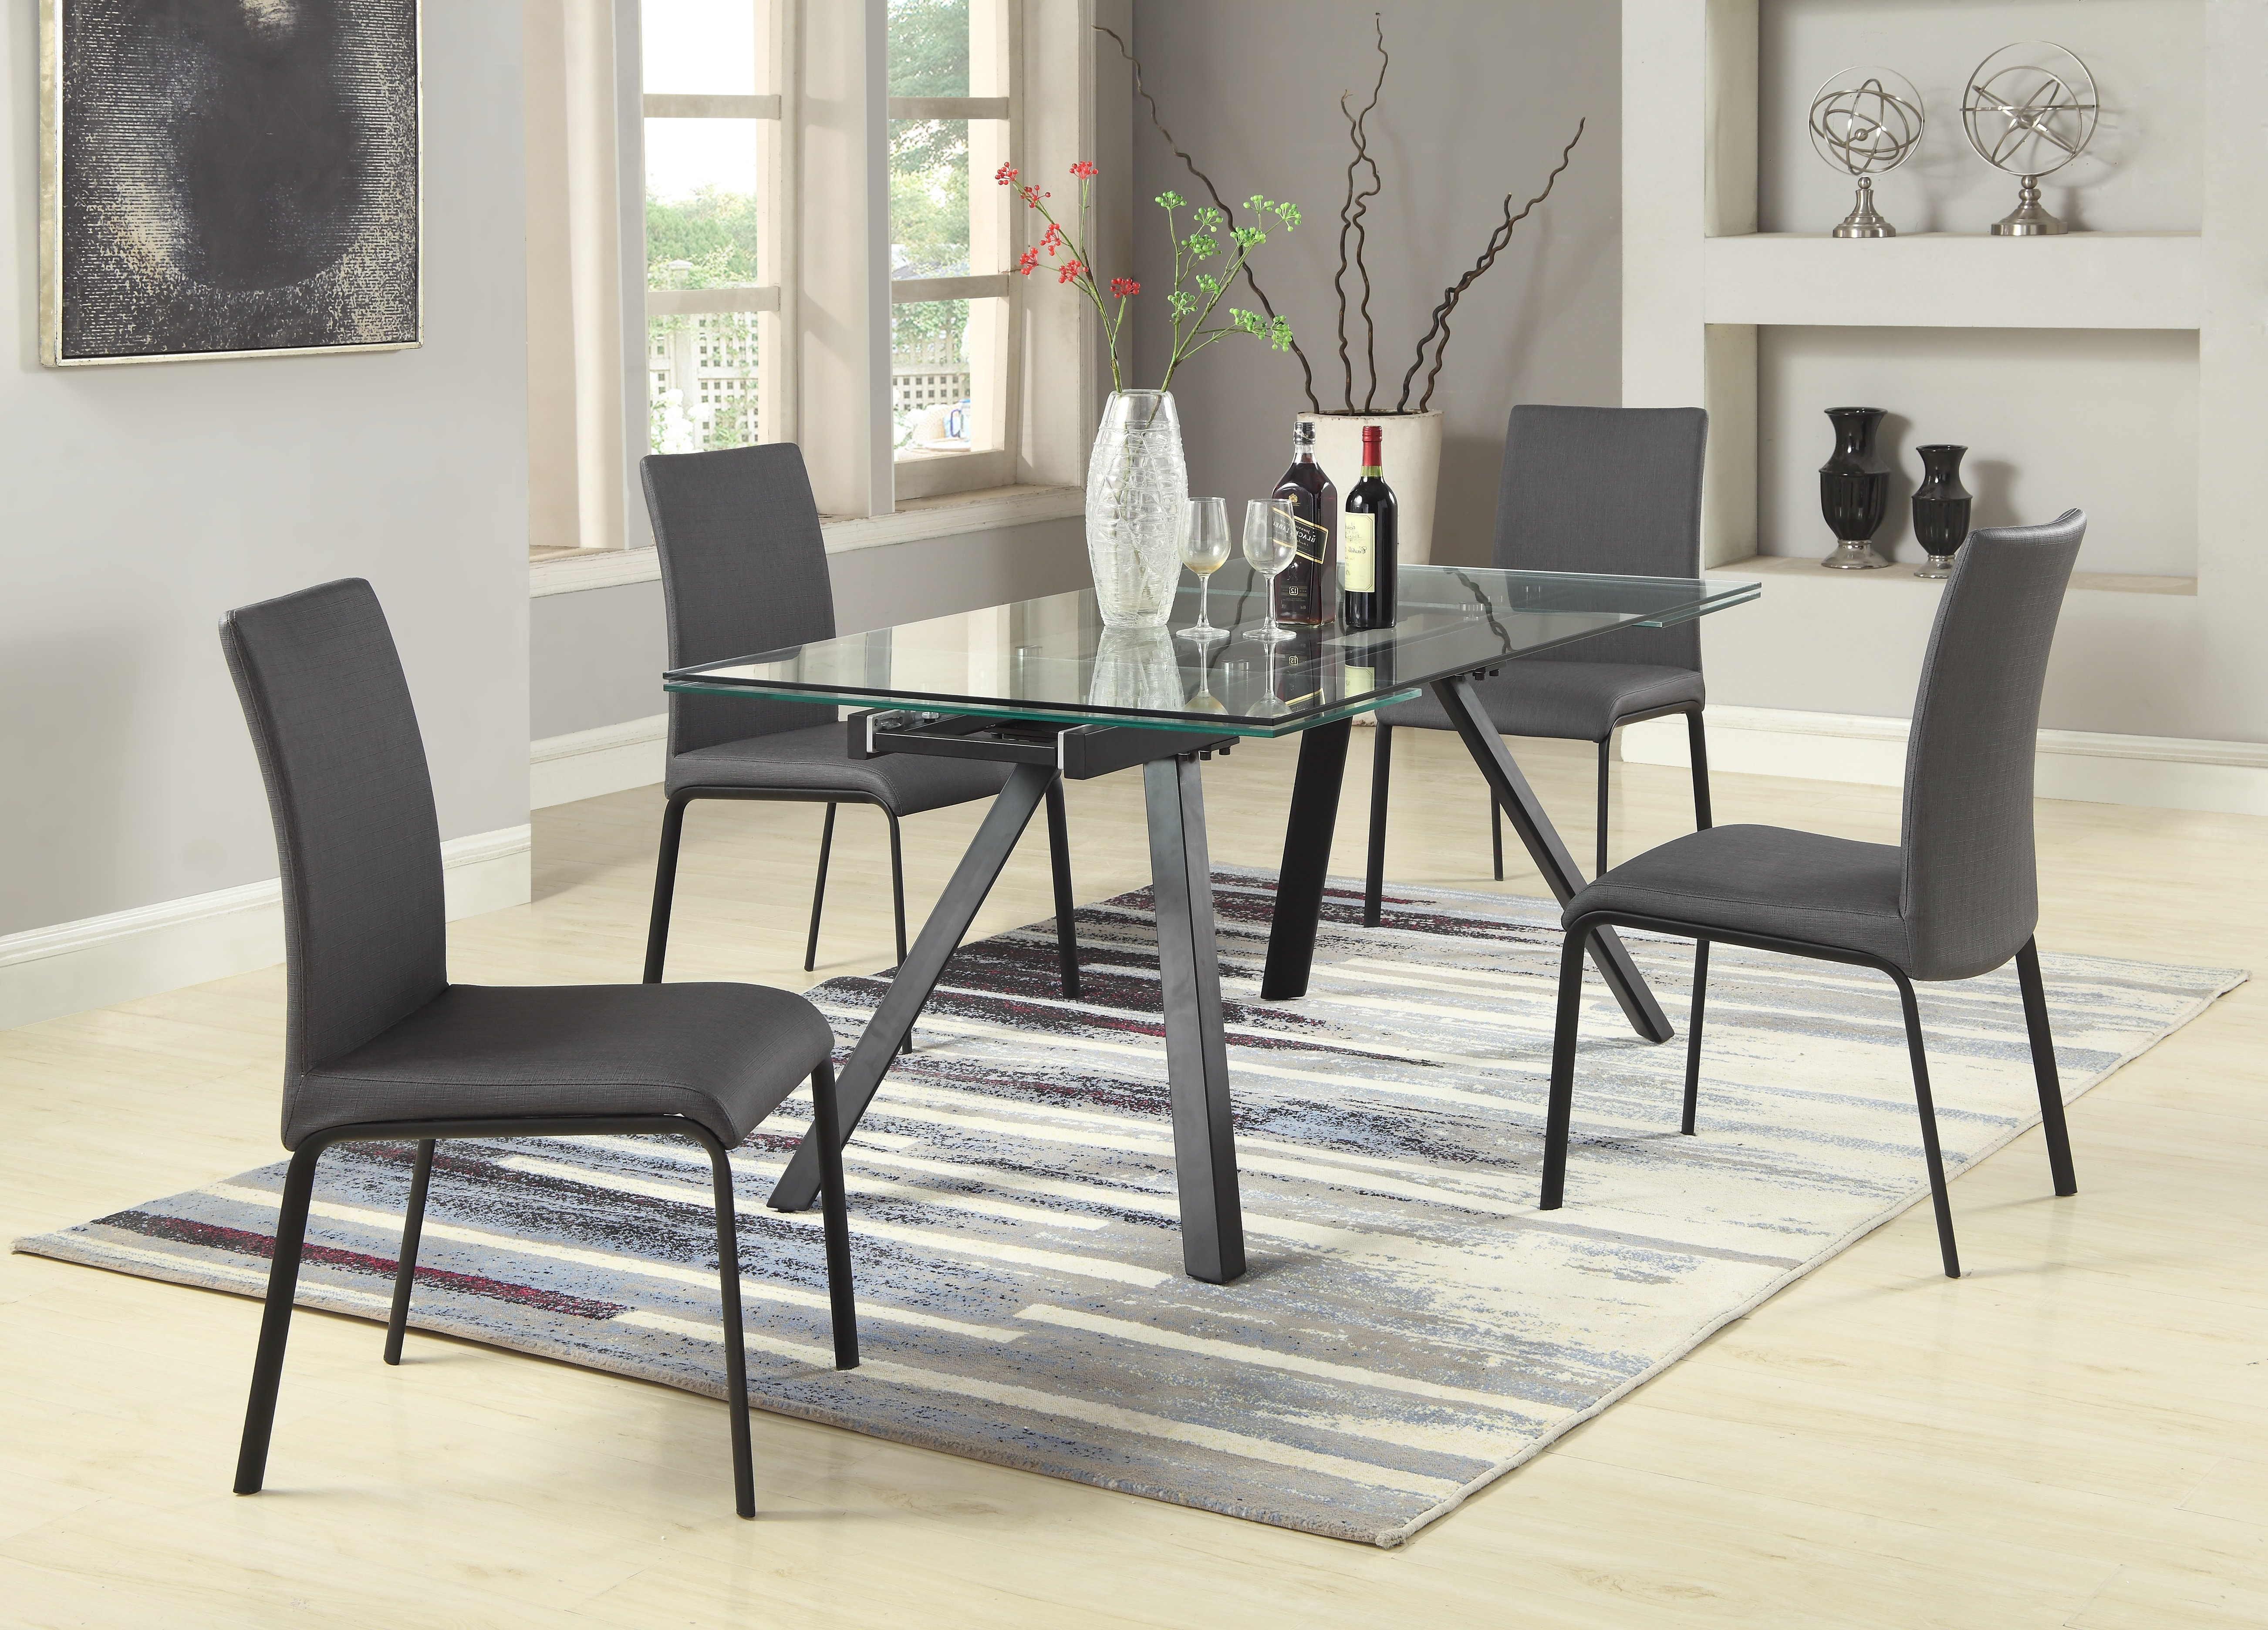 Middleport 5 Piece Dining Sets For Most Recently Released Julianne 5 Piece Extendable Dining Set (View 3 of 20)